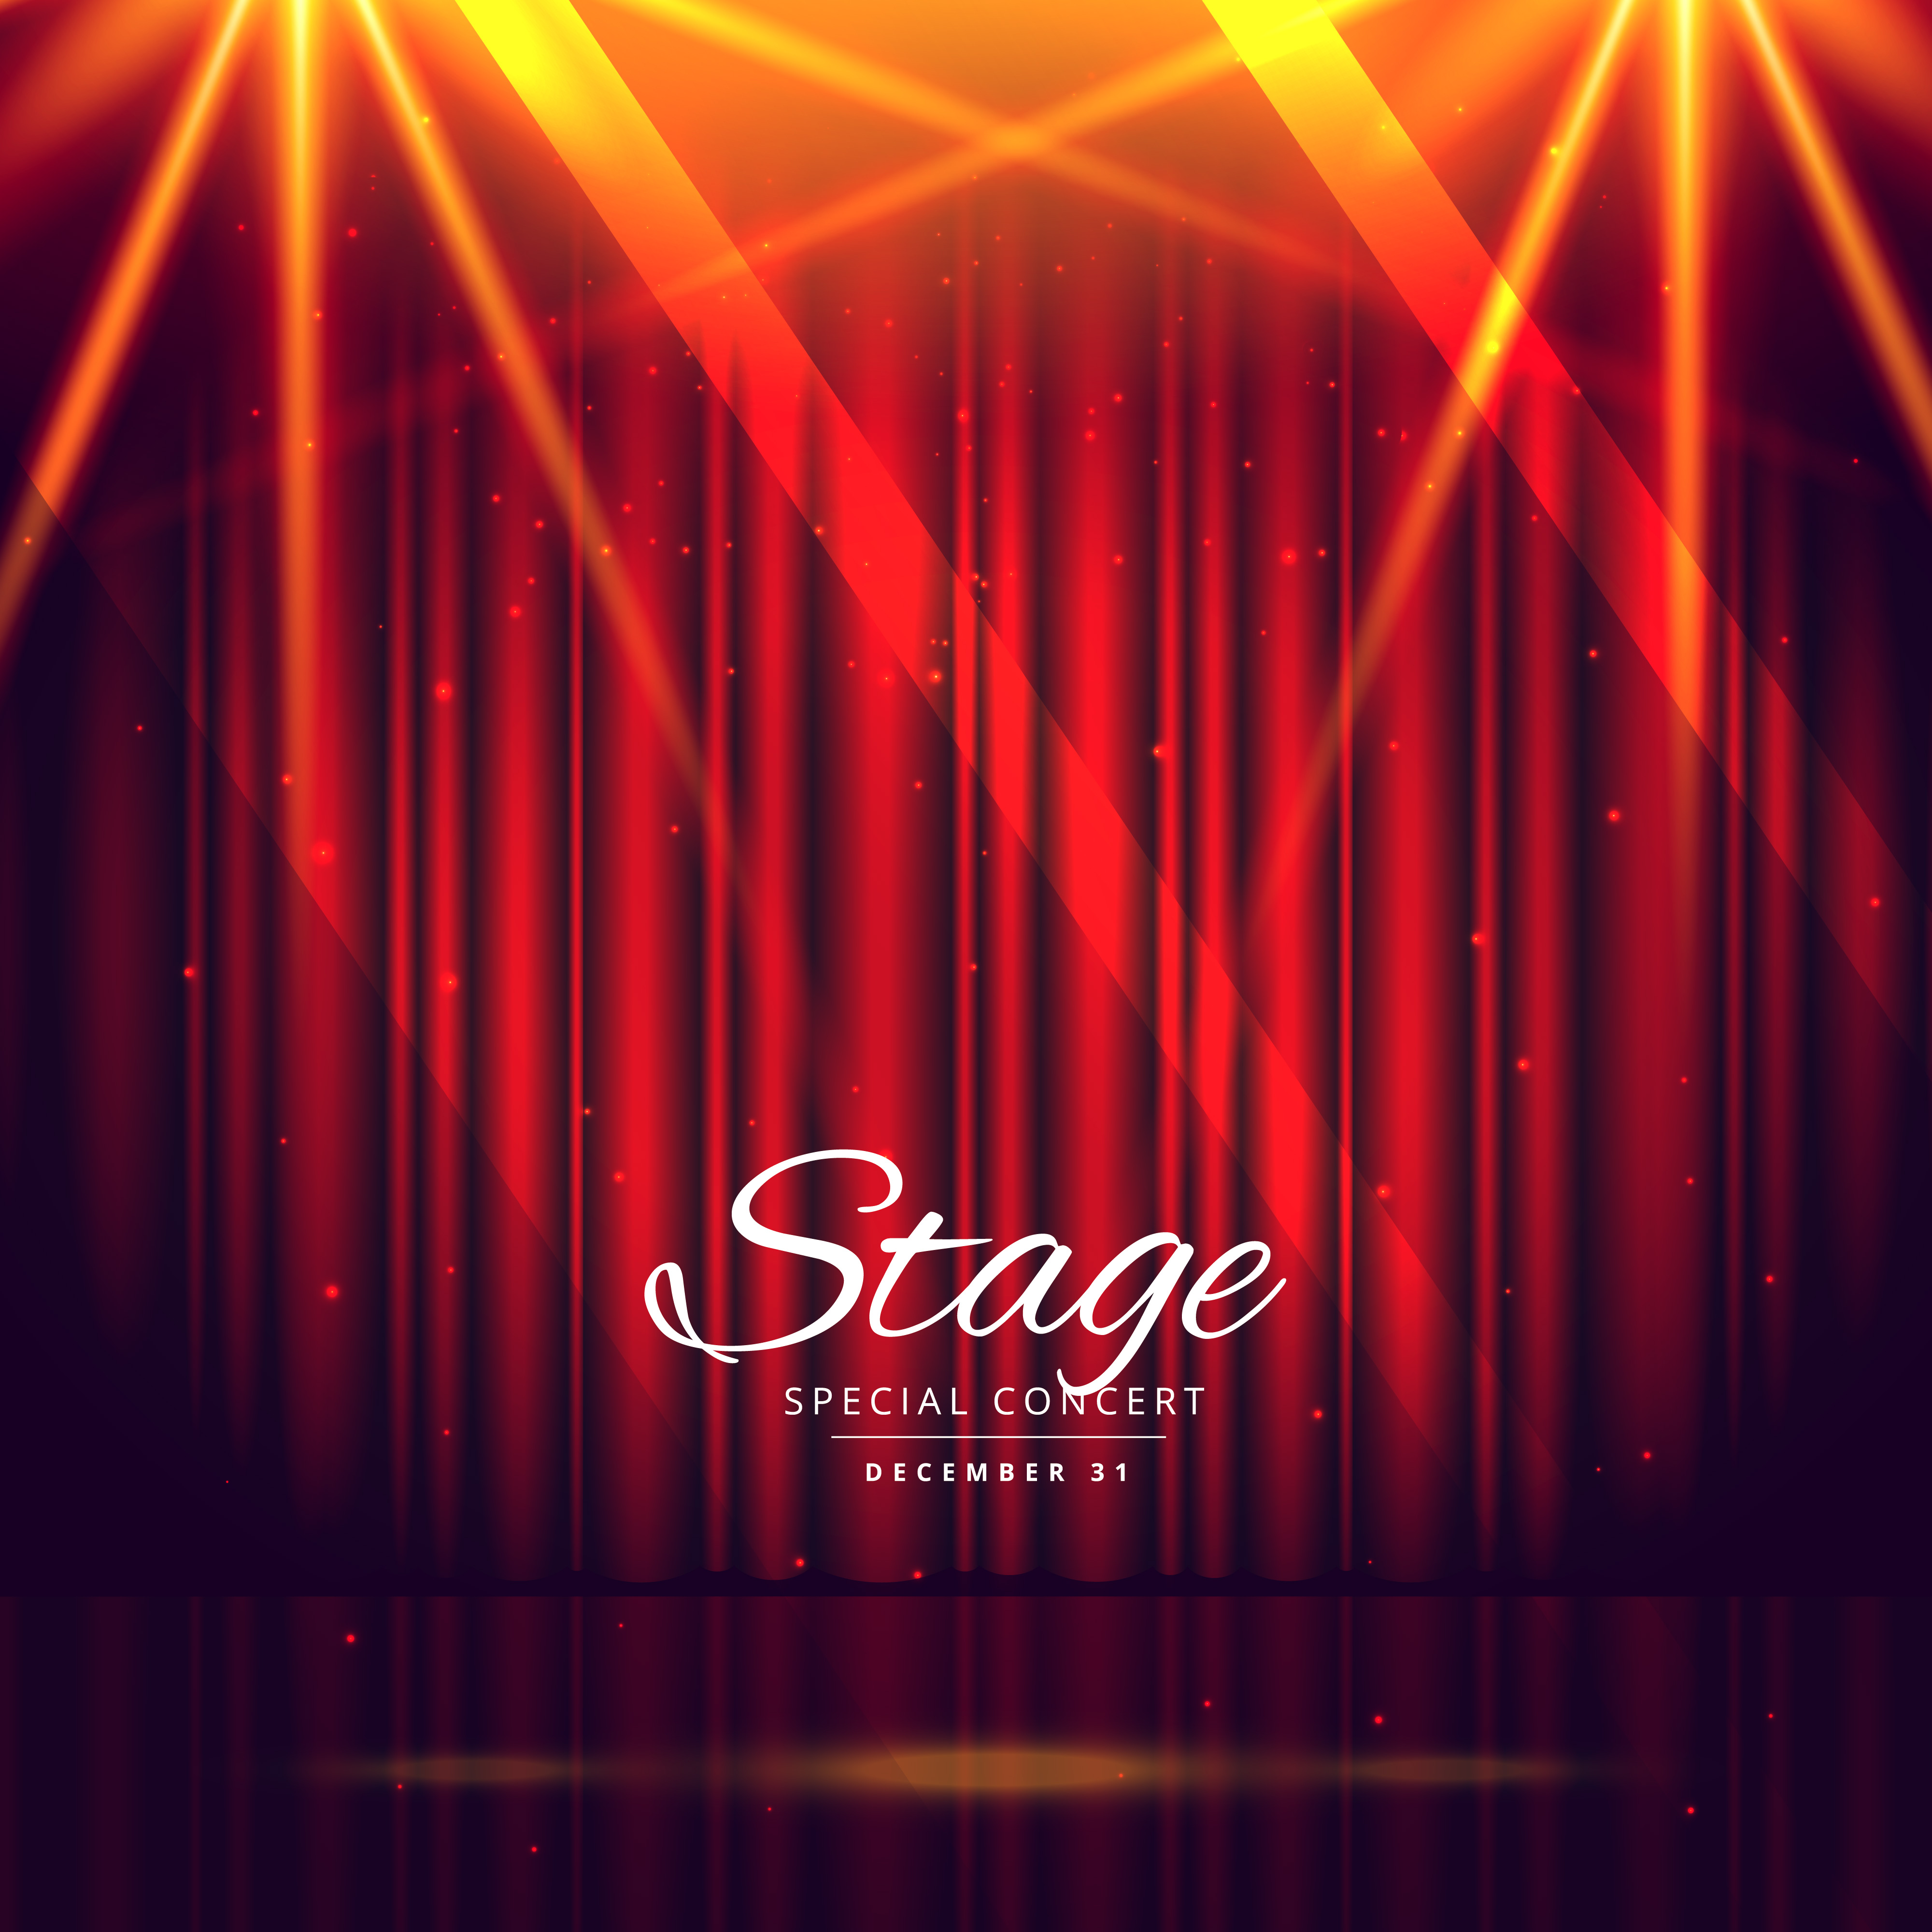 Theater Lights Background: Red Stage Background With Closed Curtains